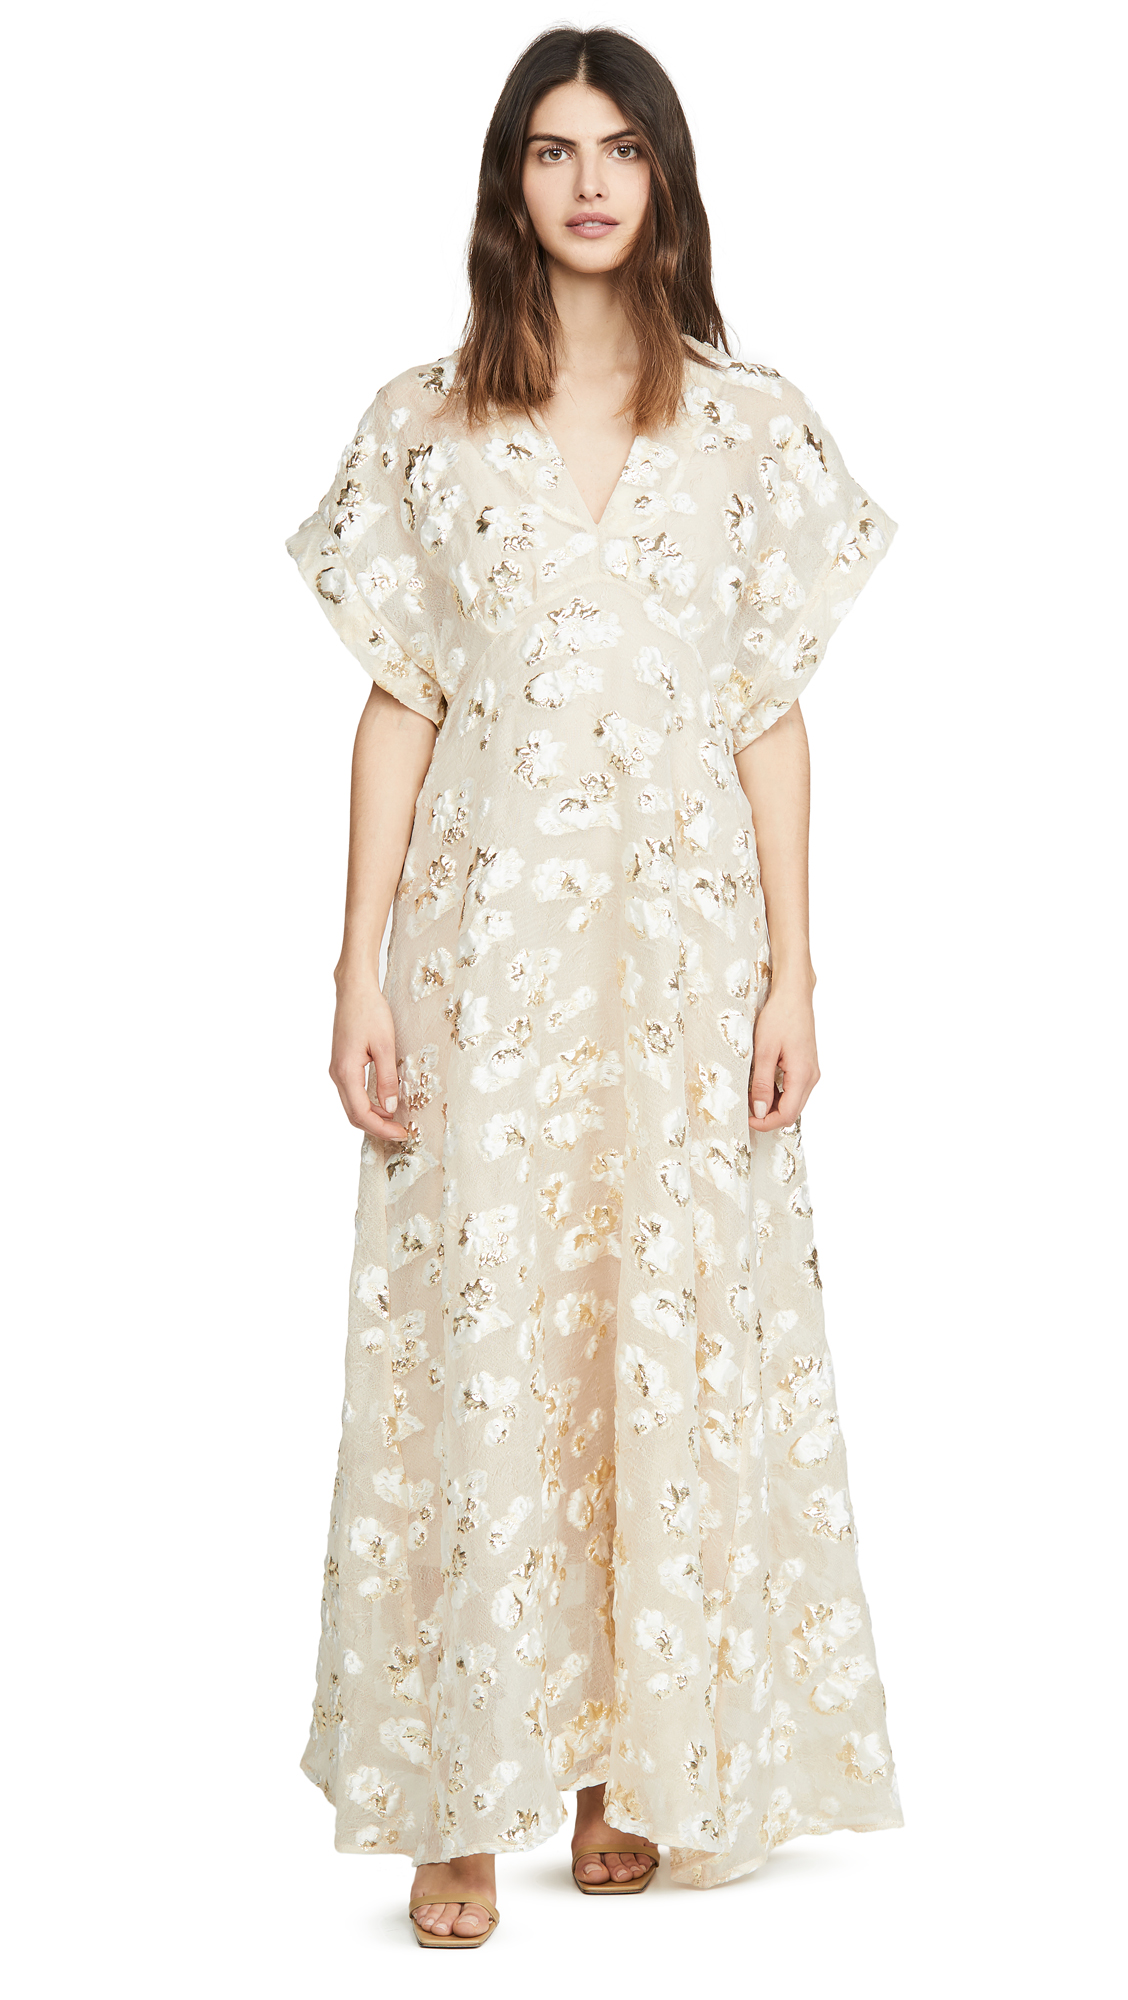 Rachel Comey New Tendril Dress - 30% Off Sale